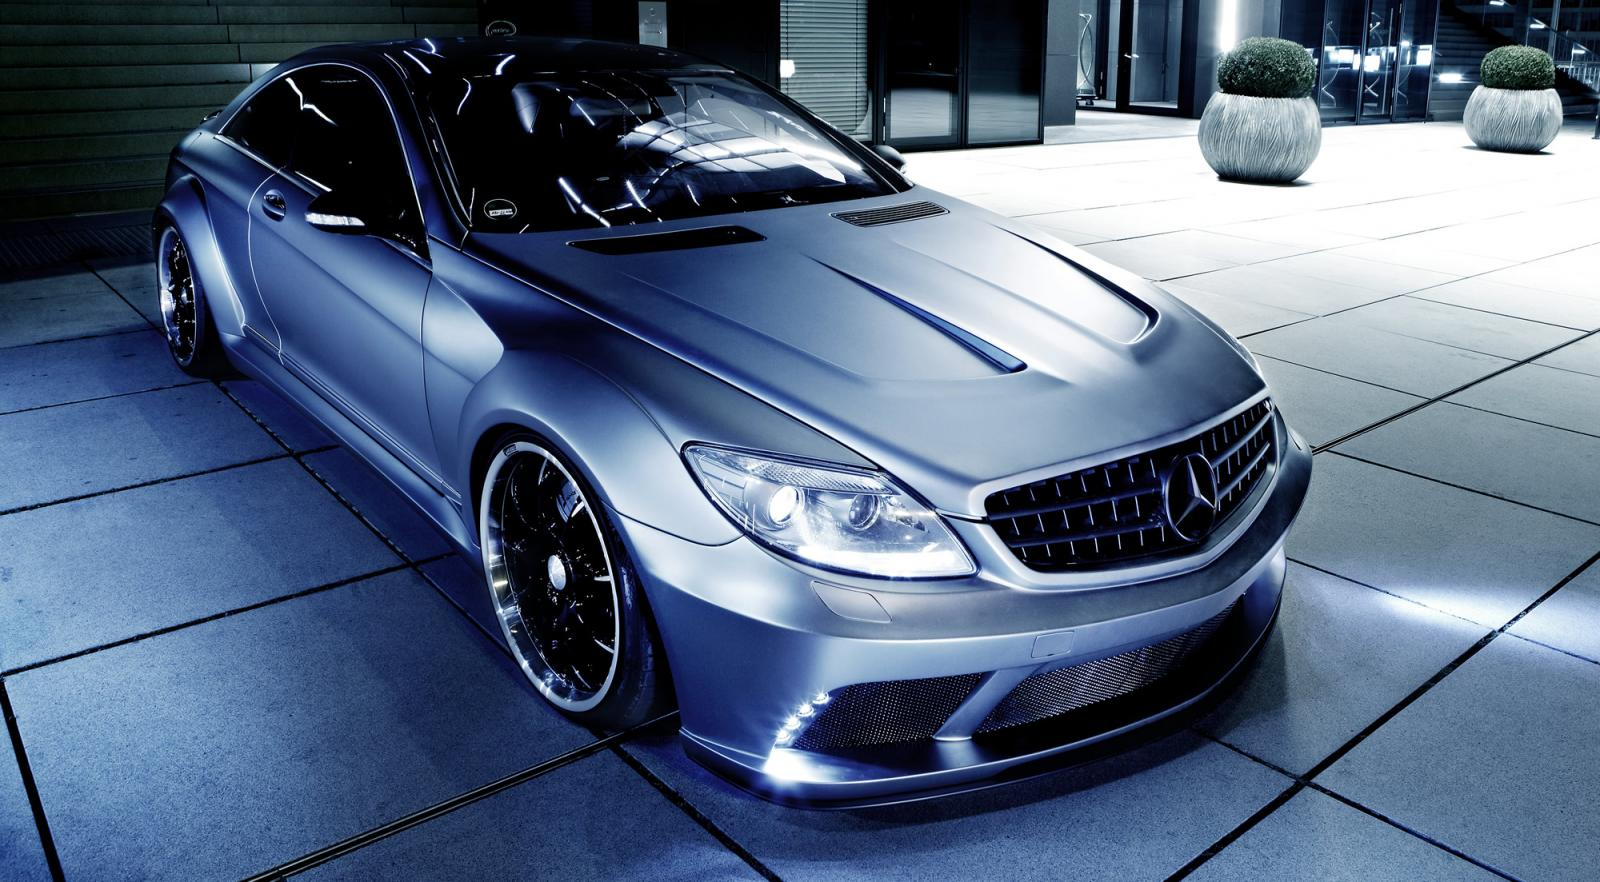 Mercedes benz cl63 amg tuned by famous parts autoevolution for Mercedes benz aftermarket performance parts